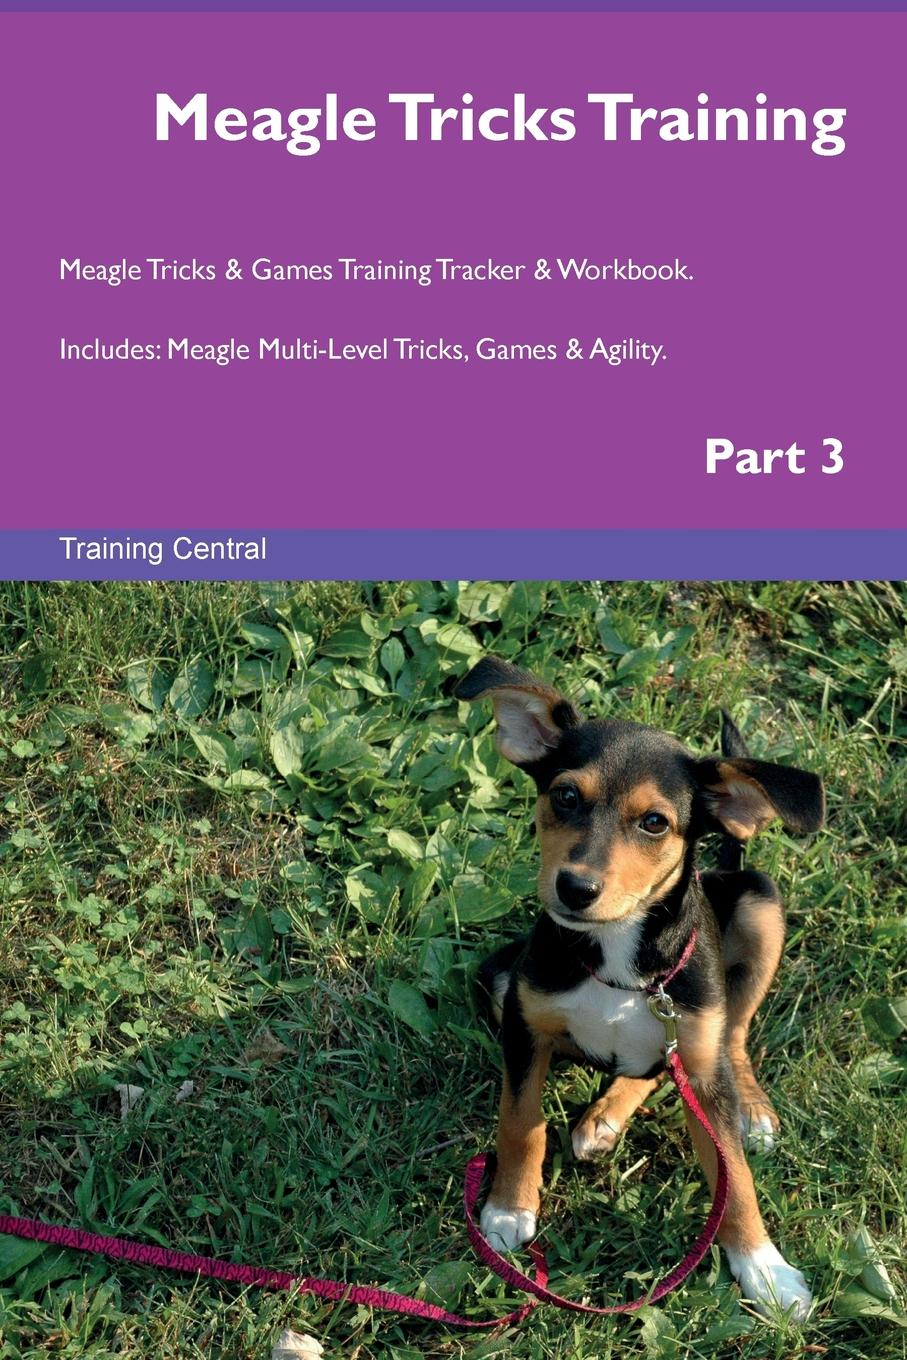 Training Central Meagle Tricks Training Meagle Tricks . Games Training Tracker . Workbook. Includes. Meagle Multi-Level Tricks, Games . Agility. Part 3 this book loves you